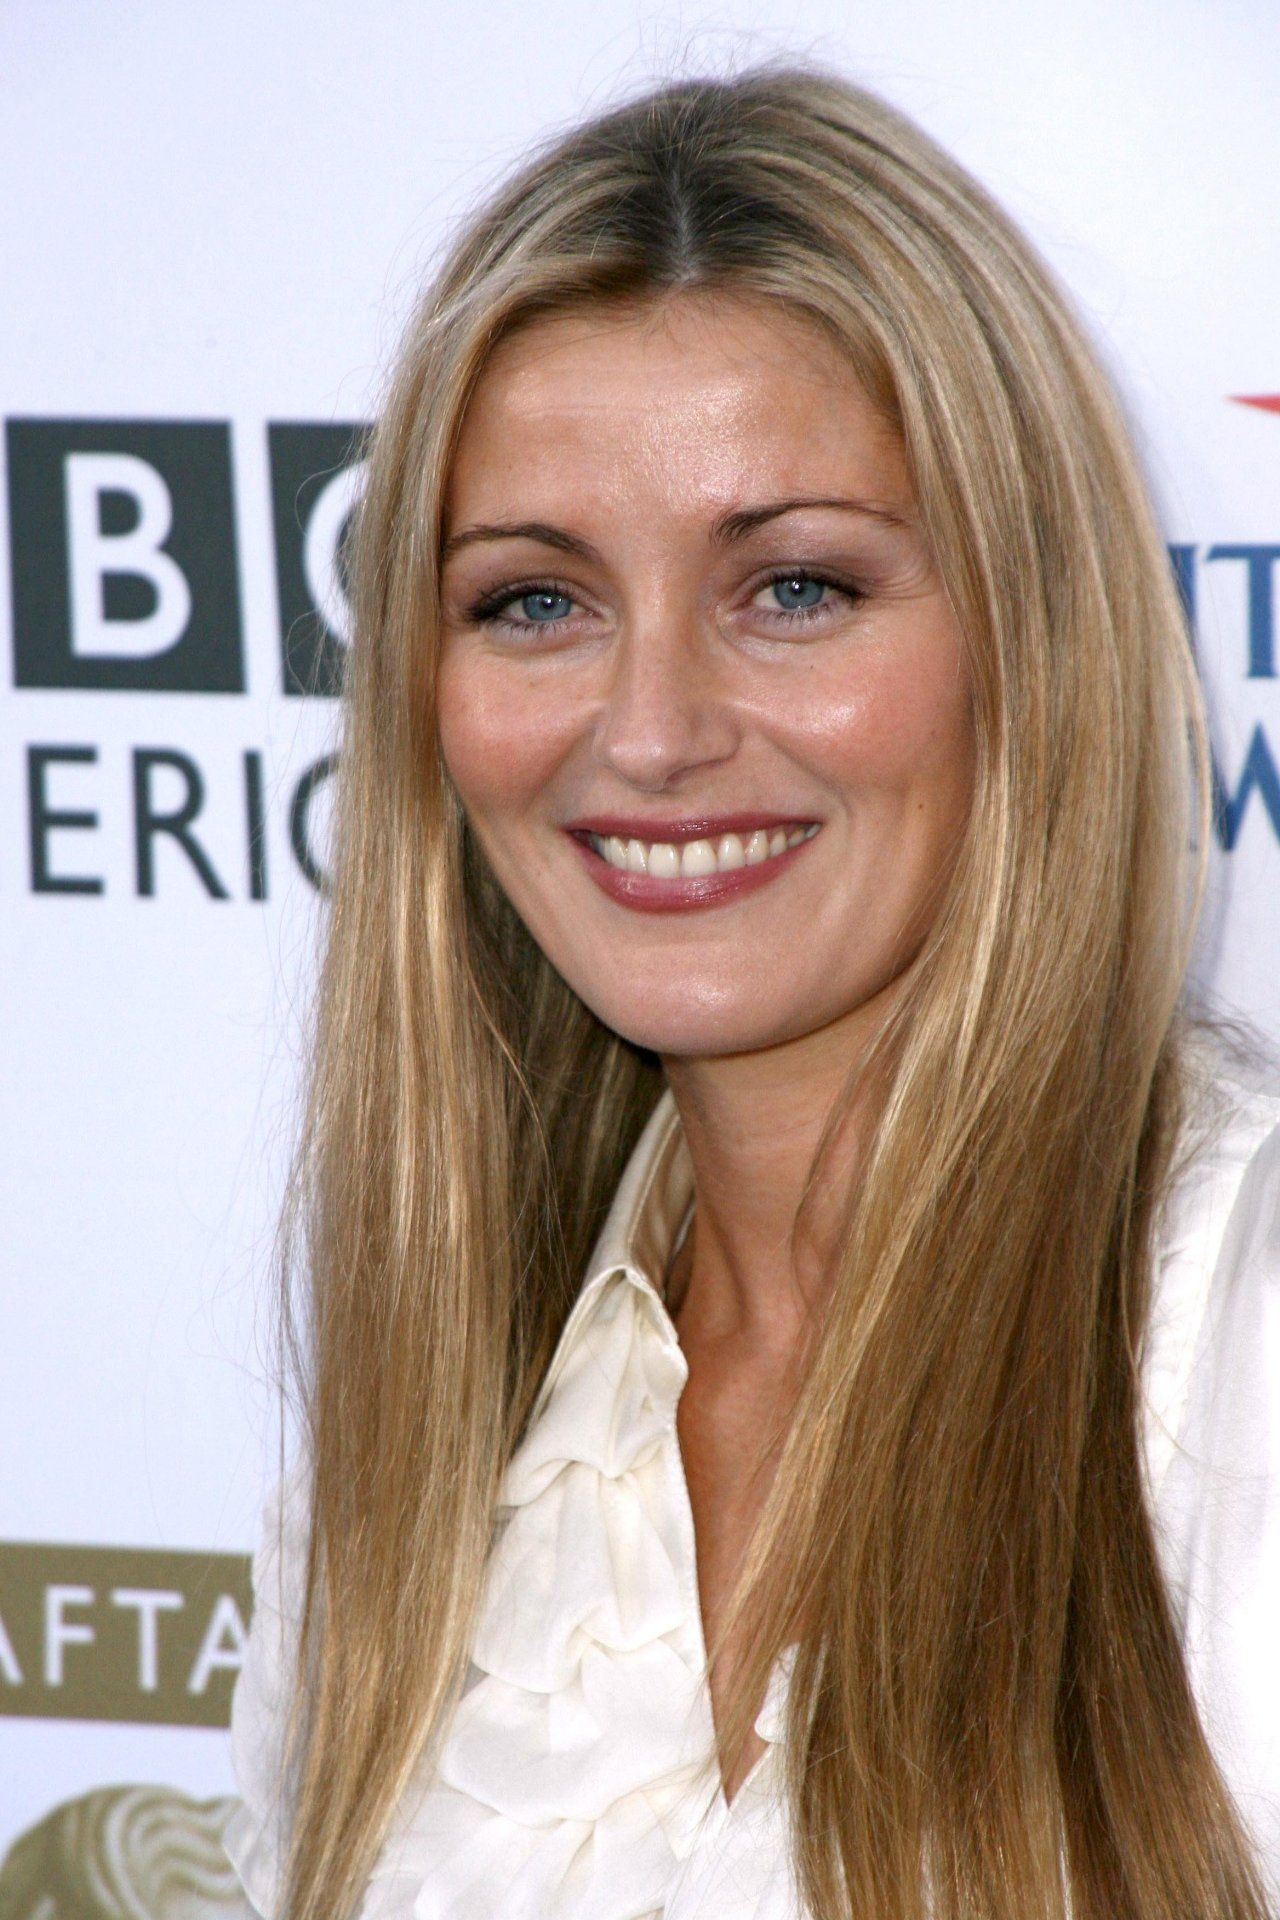 louise lombard instagramlouise lombard photo, louise lombard, louise lombard imdb, louise lombard grimm, louise lombard ncis, louise lombard csi, louise lombard alejandro sol, louise lombard biography, louise lombard instagram, louise lombard husband, louise lombard partner, louise lombard images, louise lombard pictures